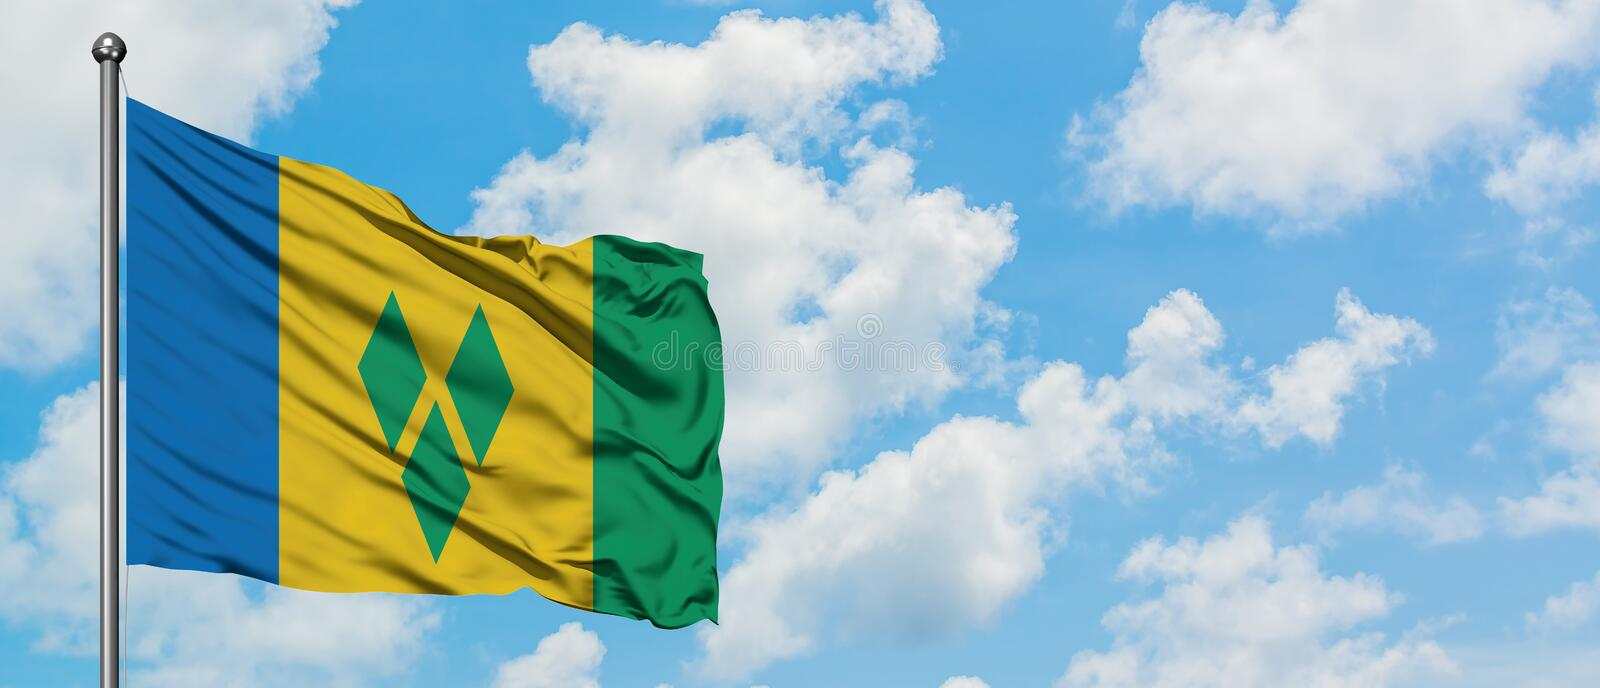 Saint Vincent And The Grenadines flag waving in the wind against white cloudy blue sky. Diplomacy concept, international relations.  stock photography